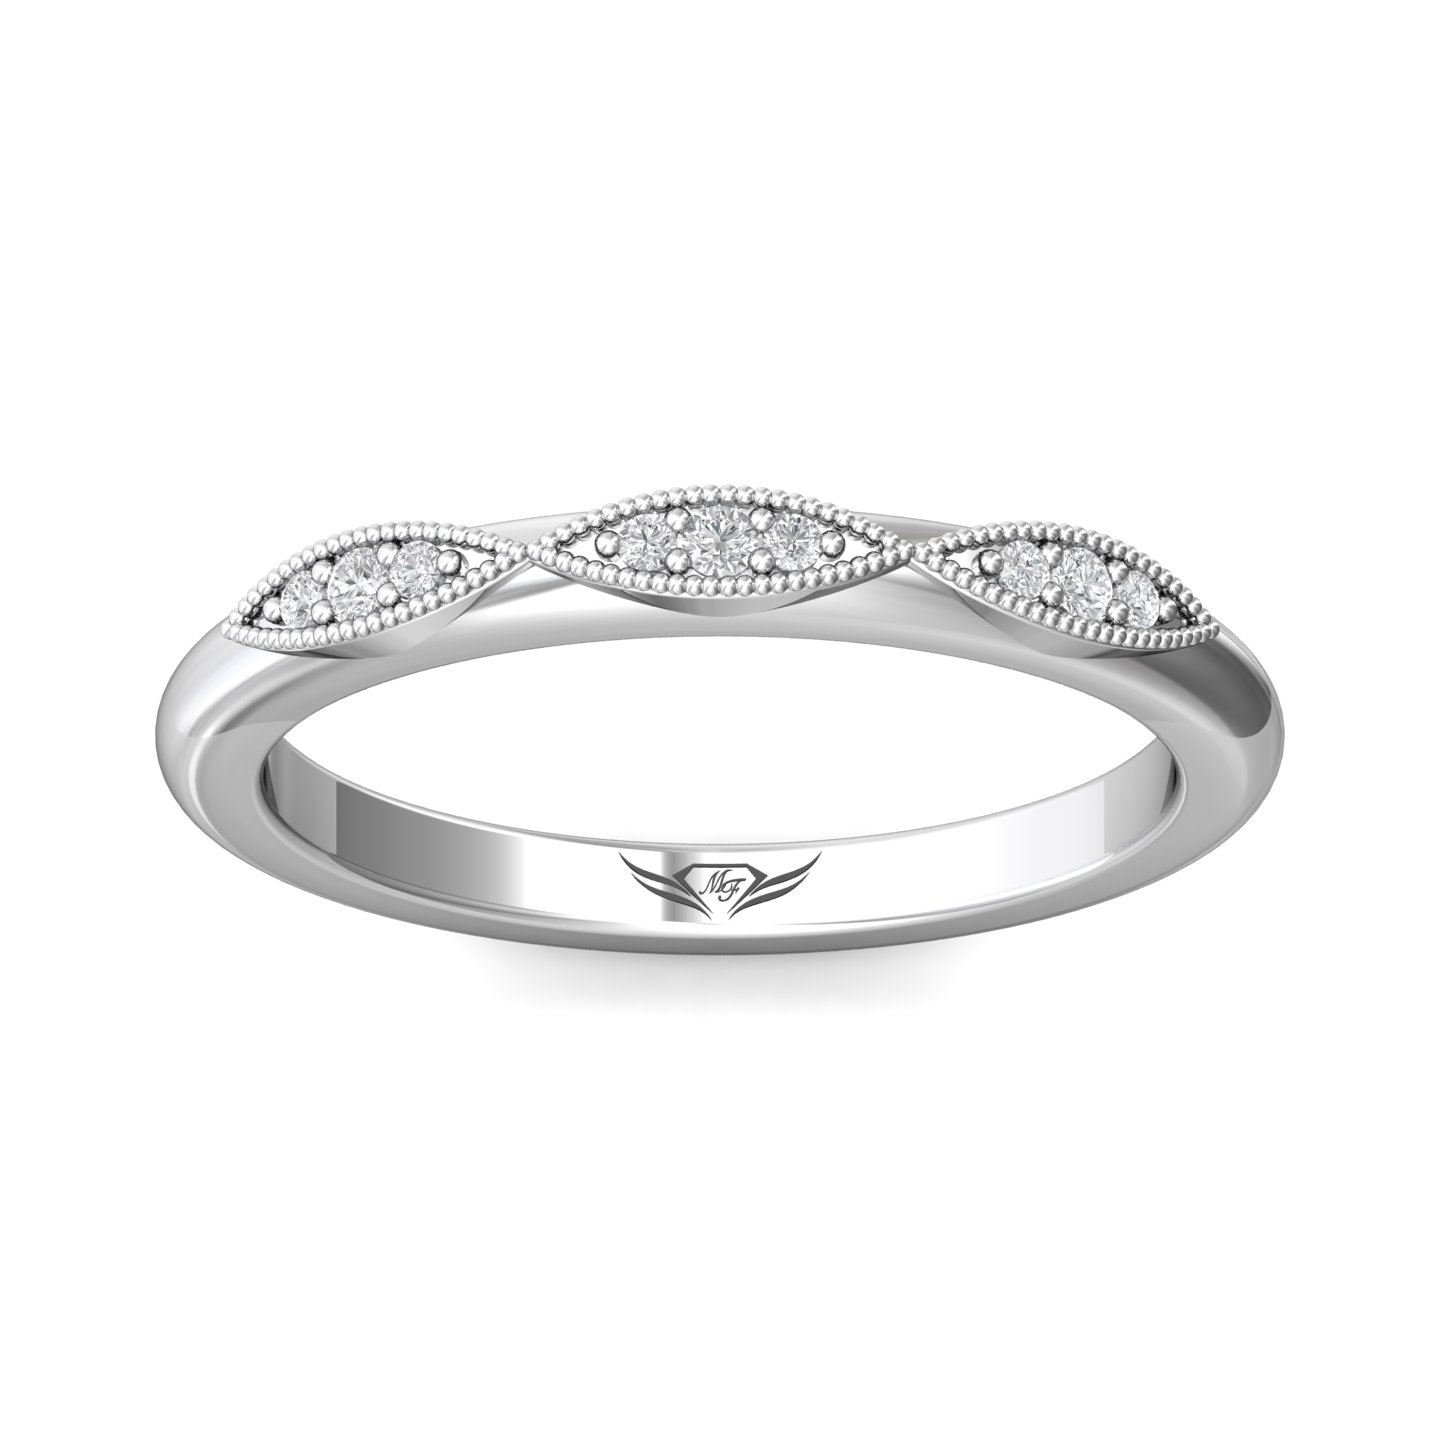 Rings - 14K White Gold FlyerFit Micropave Bead Set Wedding Band - image #3